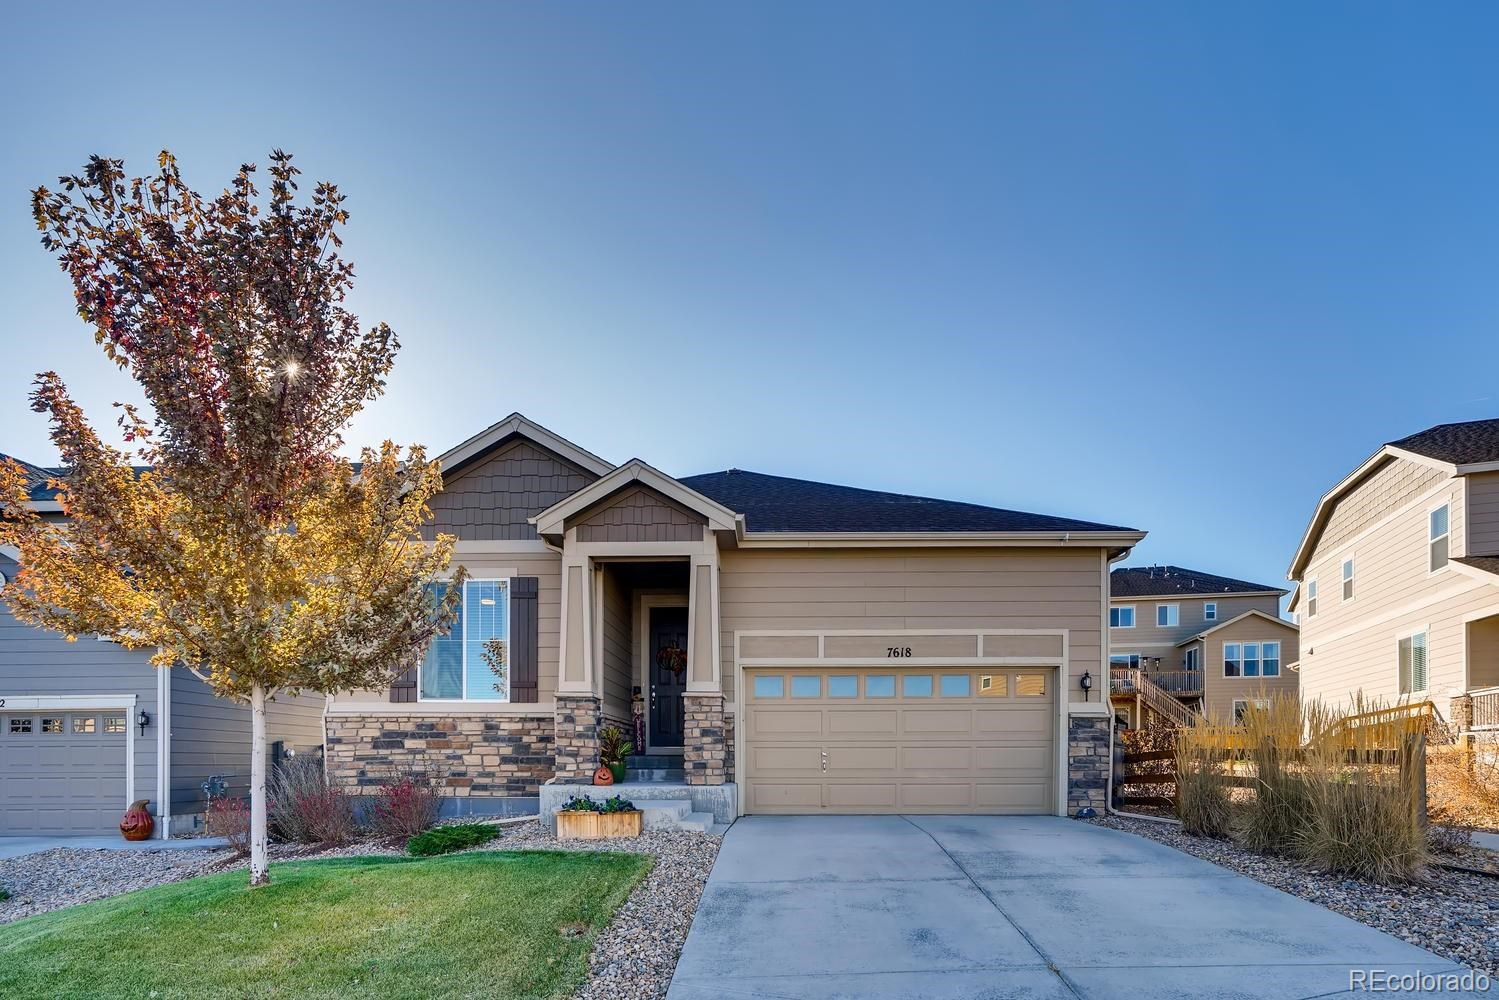 MLS# 5328275 - 2 - 7618 Blue Water Lane, Castle Rock, CO 80108